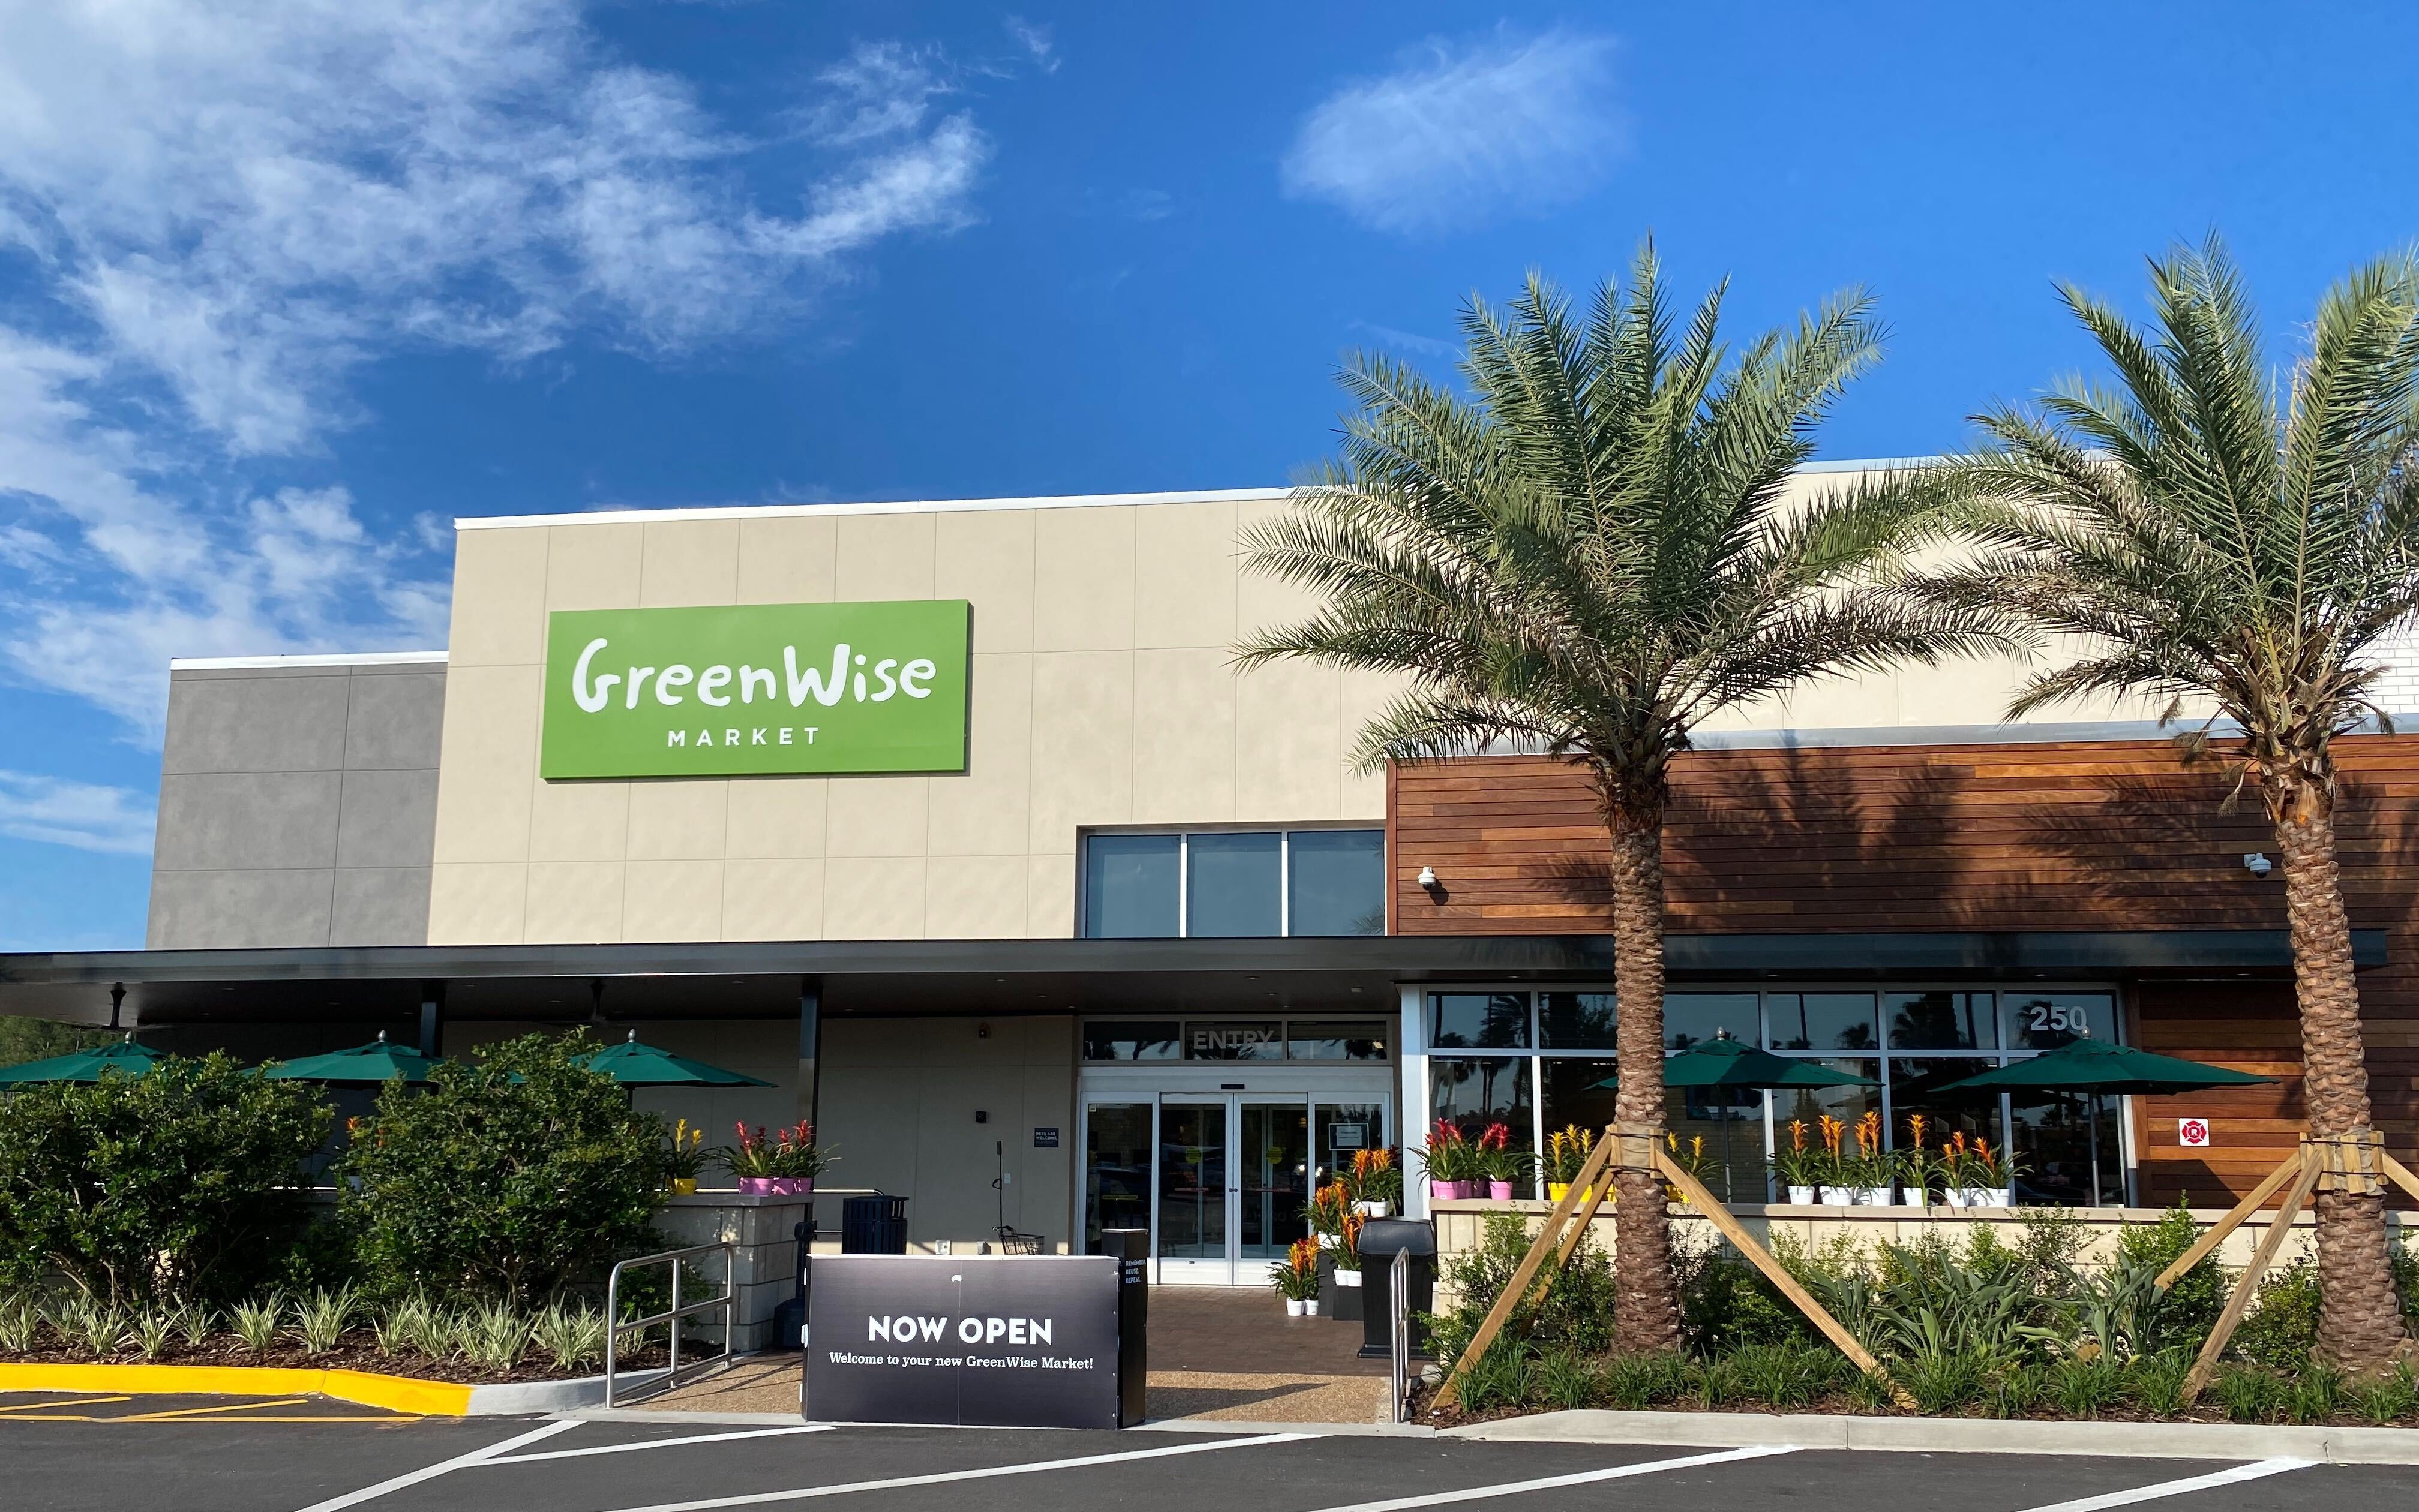 Greenwise Market at Nocatee